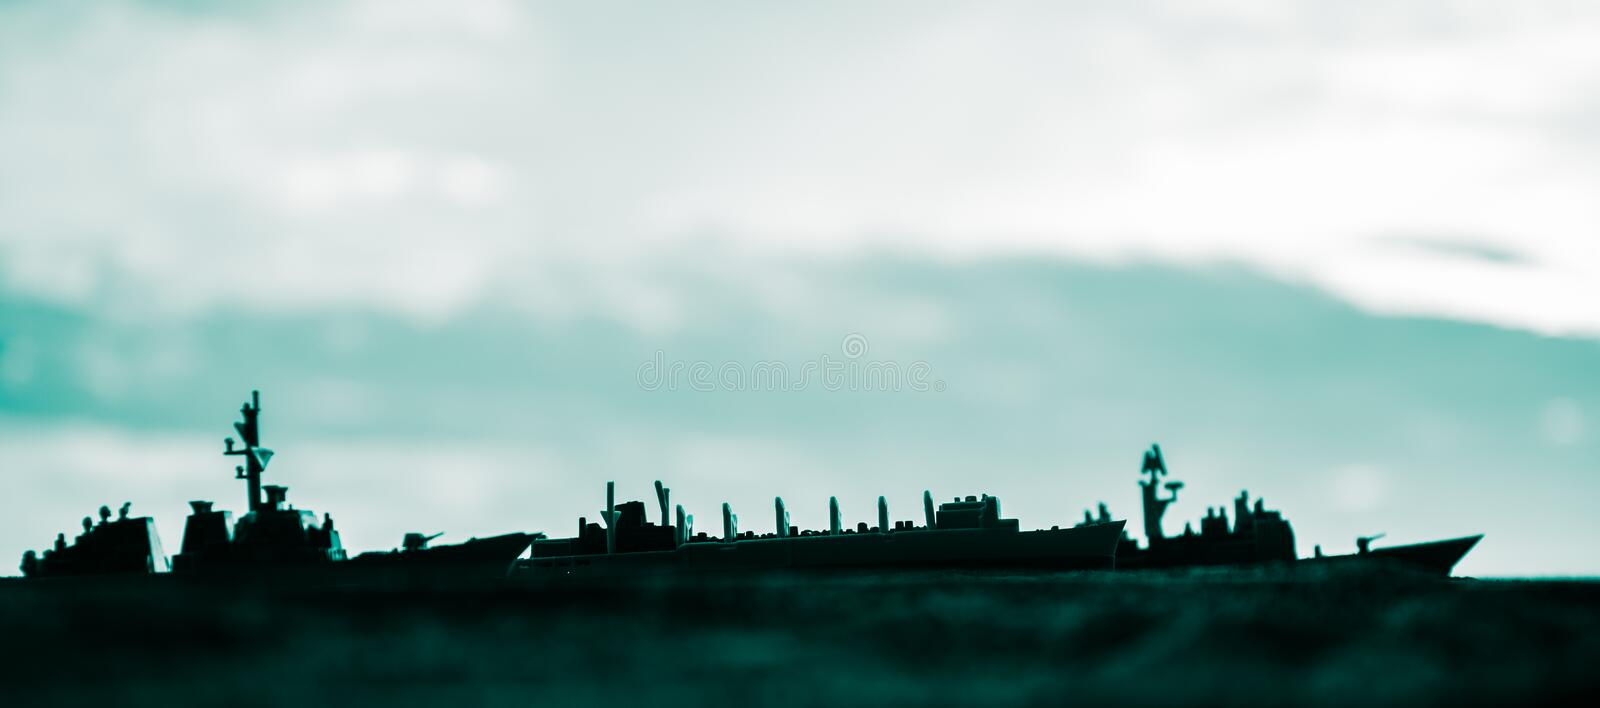 Military navy ships in a sea bay at sunset time. Selective focus royalty free stock photos